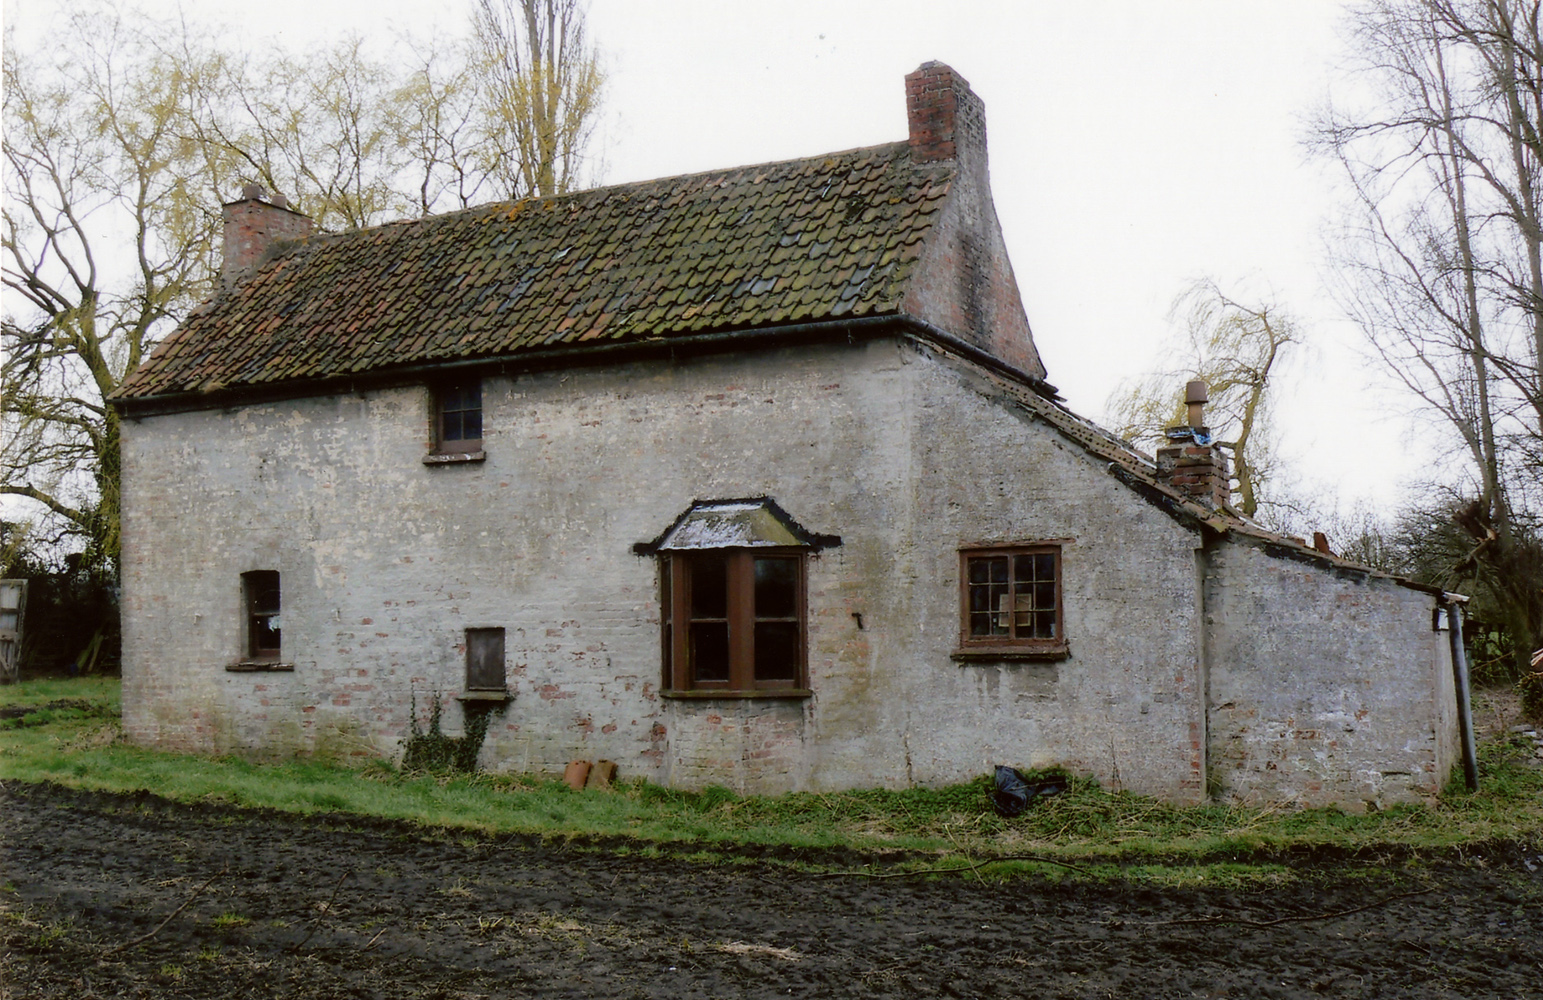 The lock house, view of the rear elevation